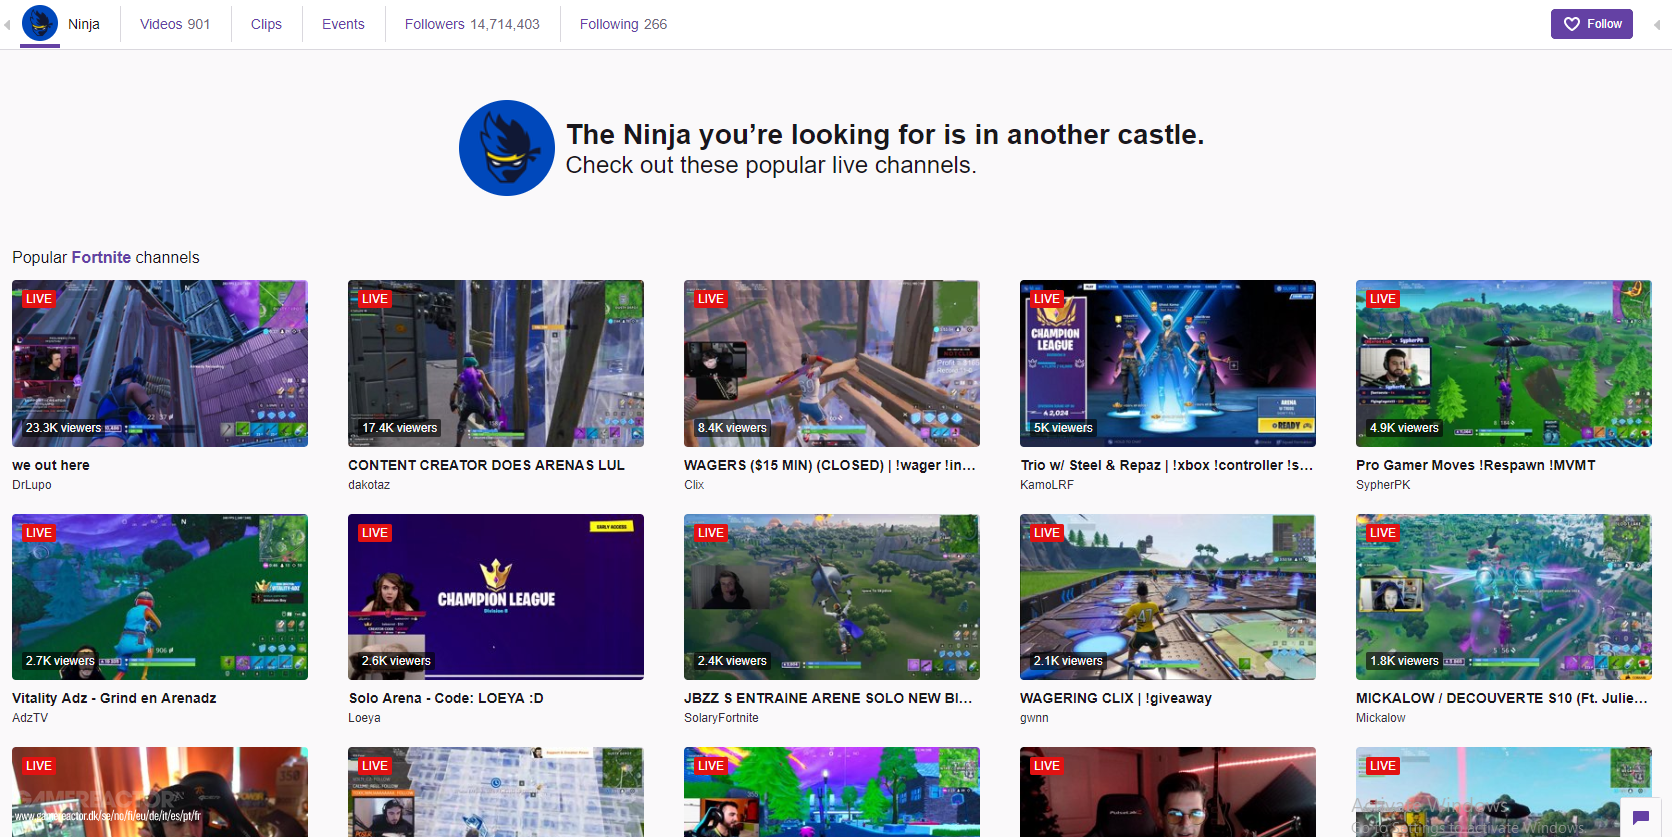 Twitch replaces Ninja's stream banner with a message